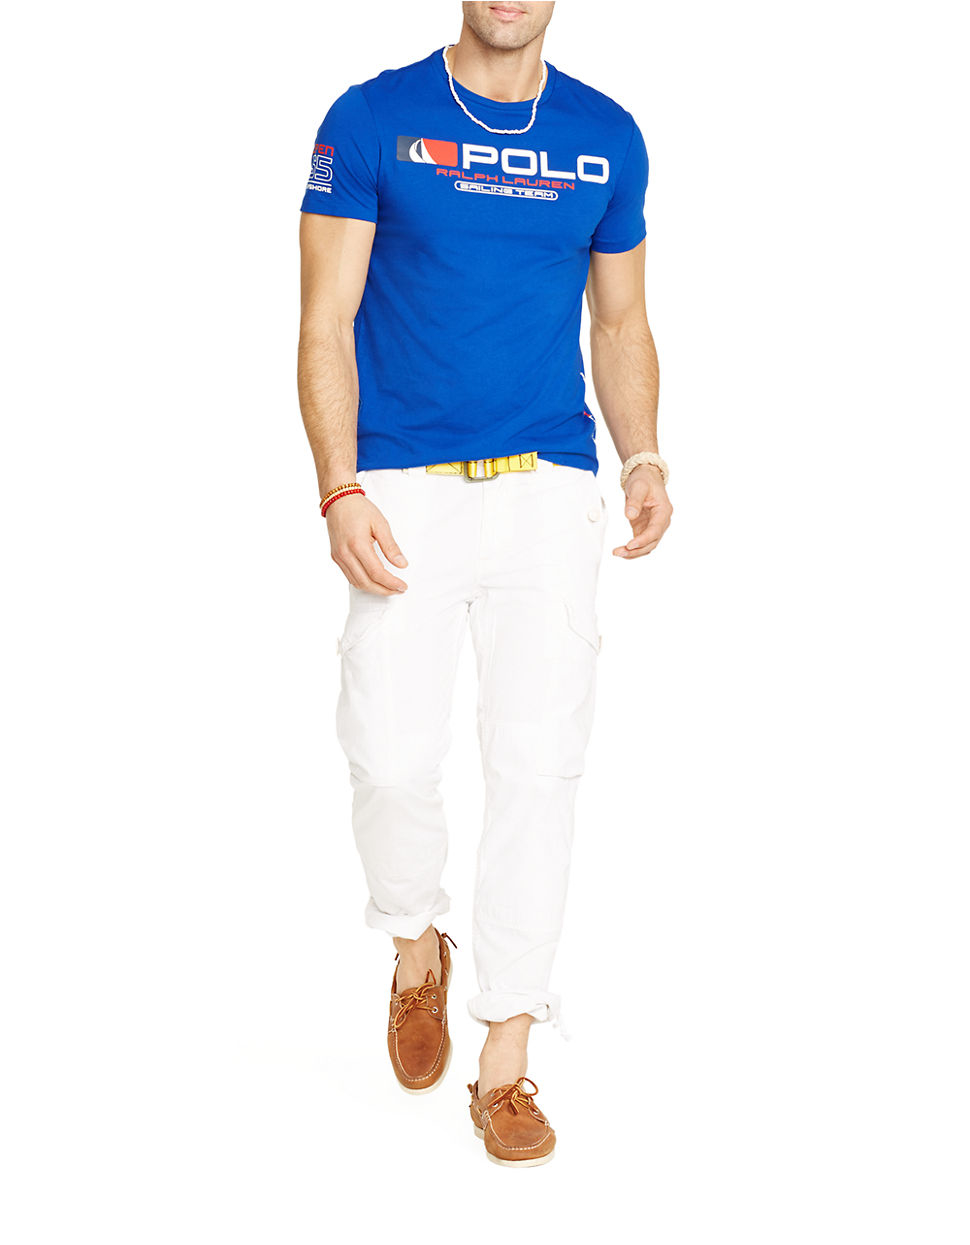 polo ralph lauren sailing team graphic t shirt in blue for men lyst. Black Bedroom Furniture Sets. Home Design Ideas